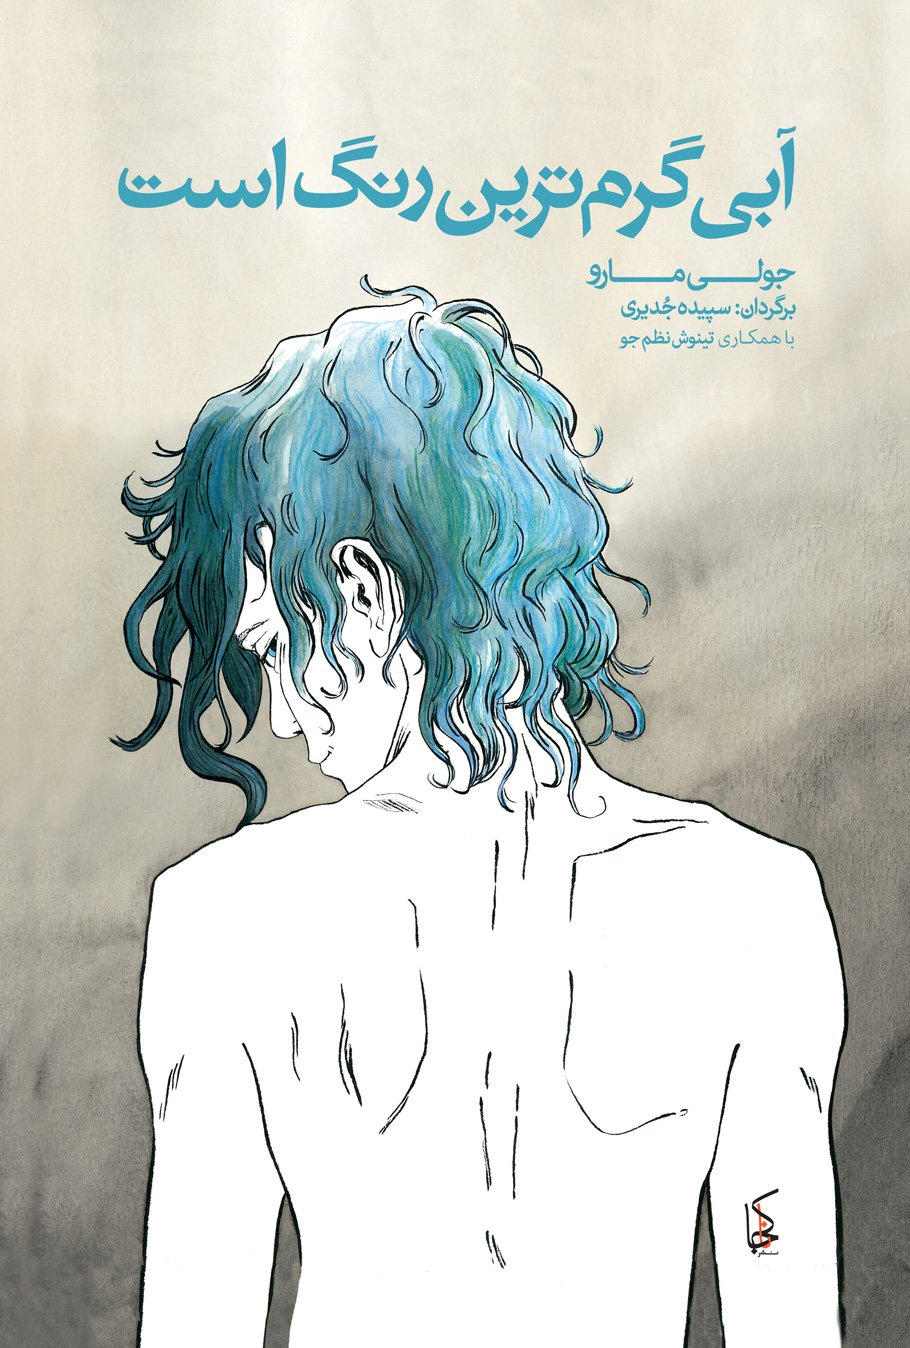 Cover of the Persian translation of Blue is the Warmest Color.